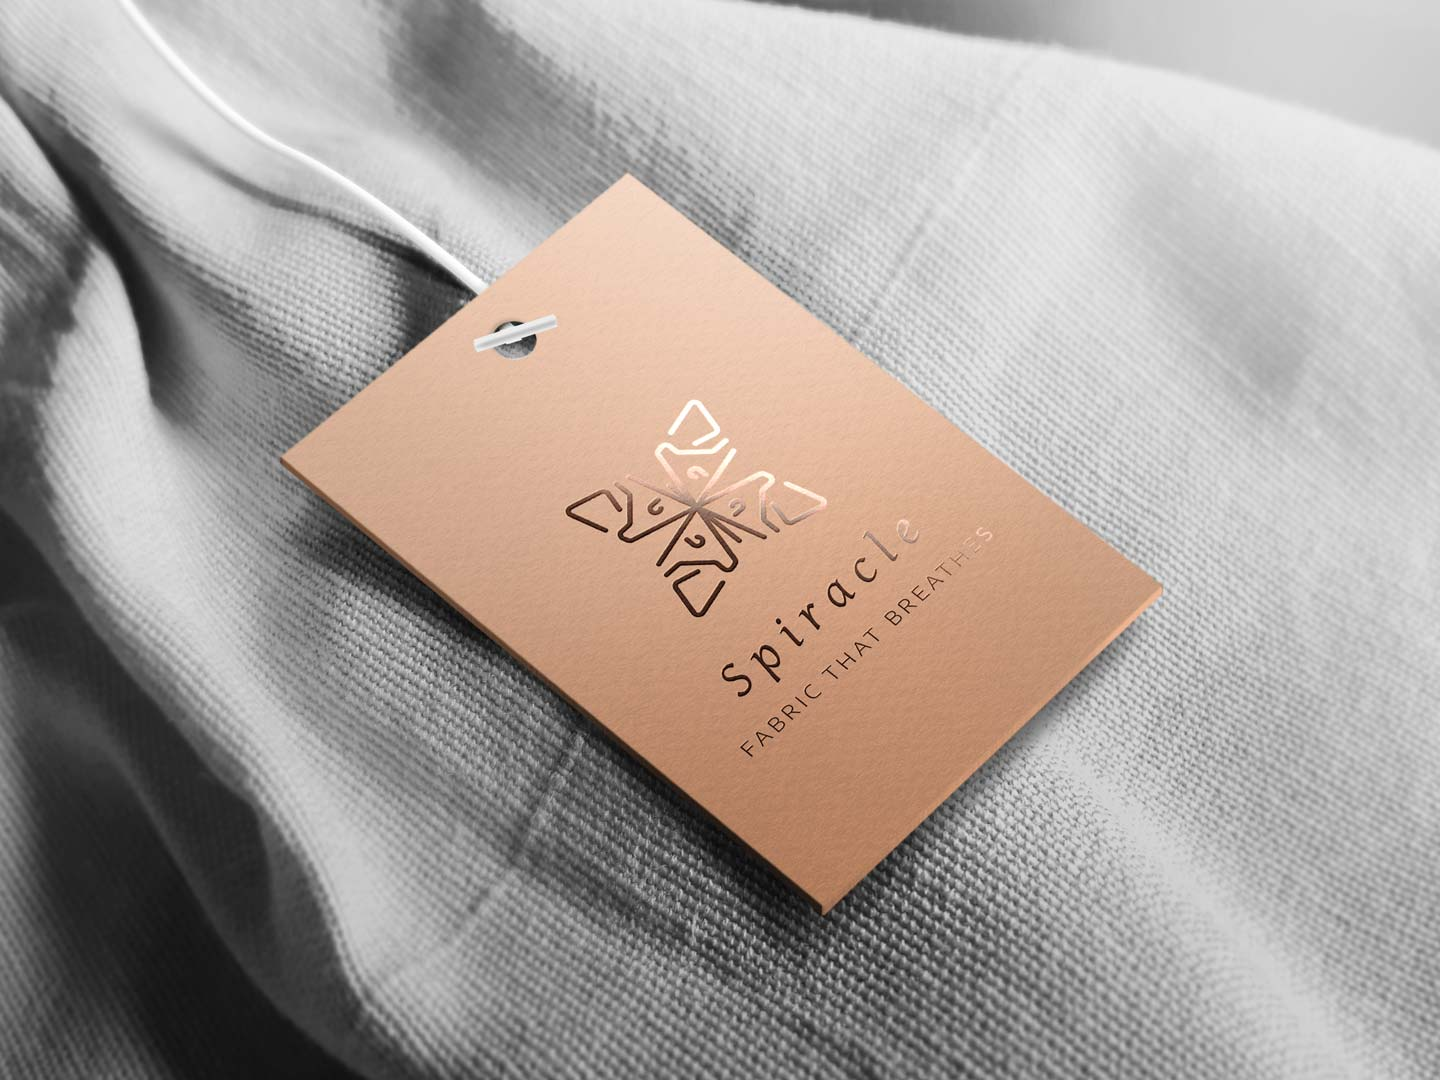 Spiracle clothing tag.